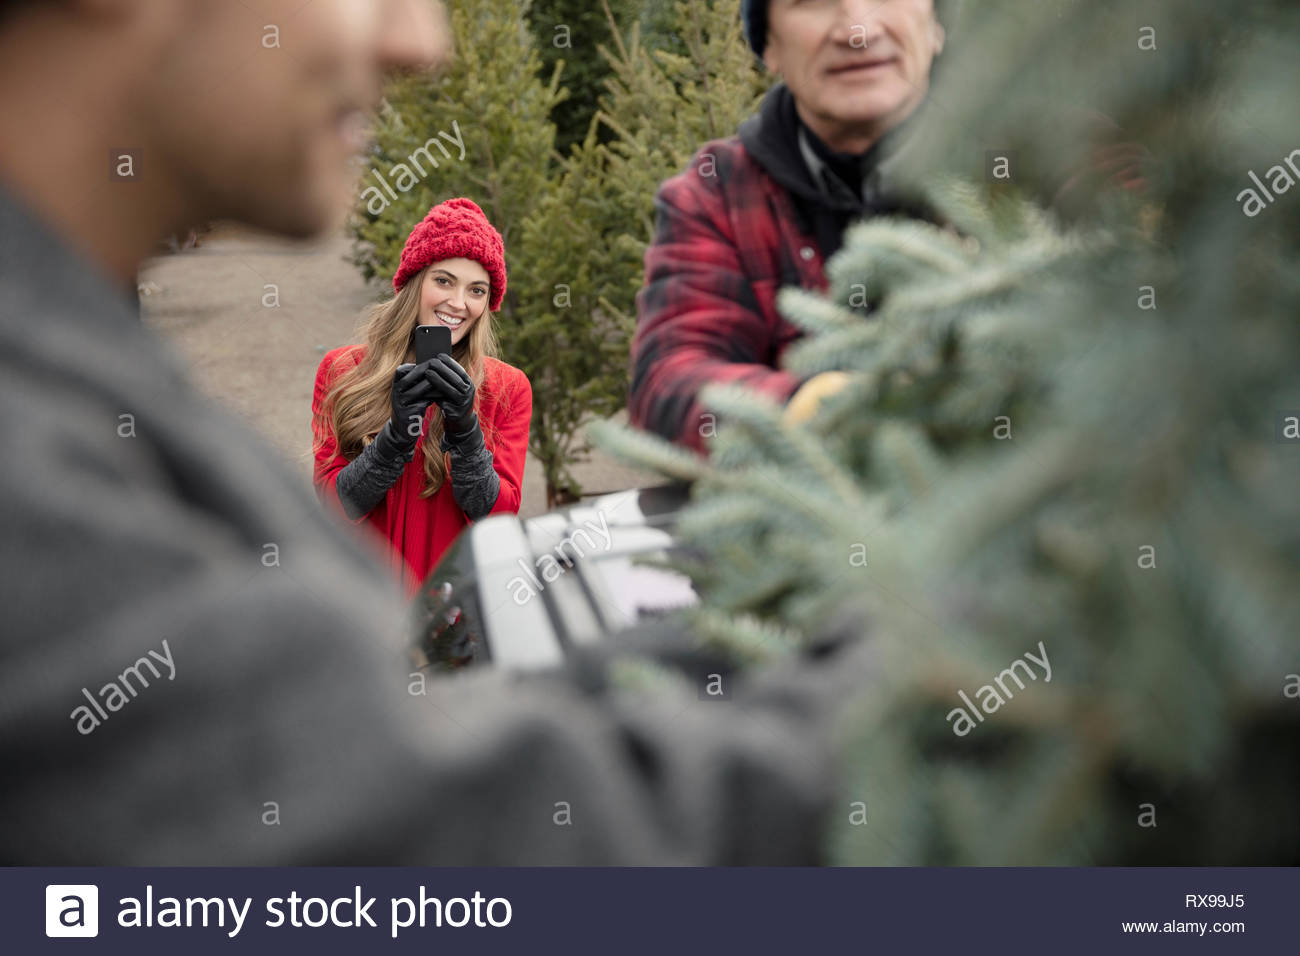 Woman with camera phone photographing boyfriend shopping for christmas tree at christmas market - Stock Image